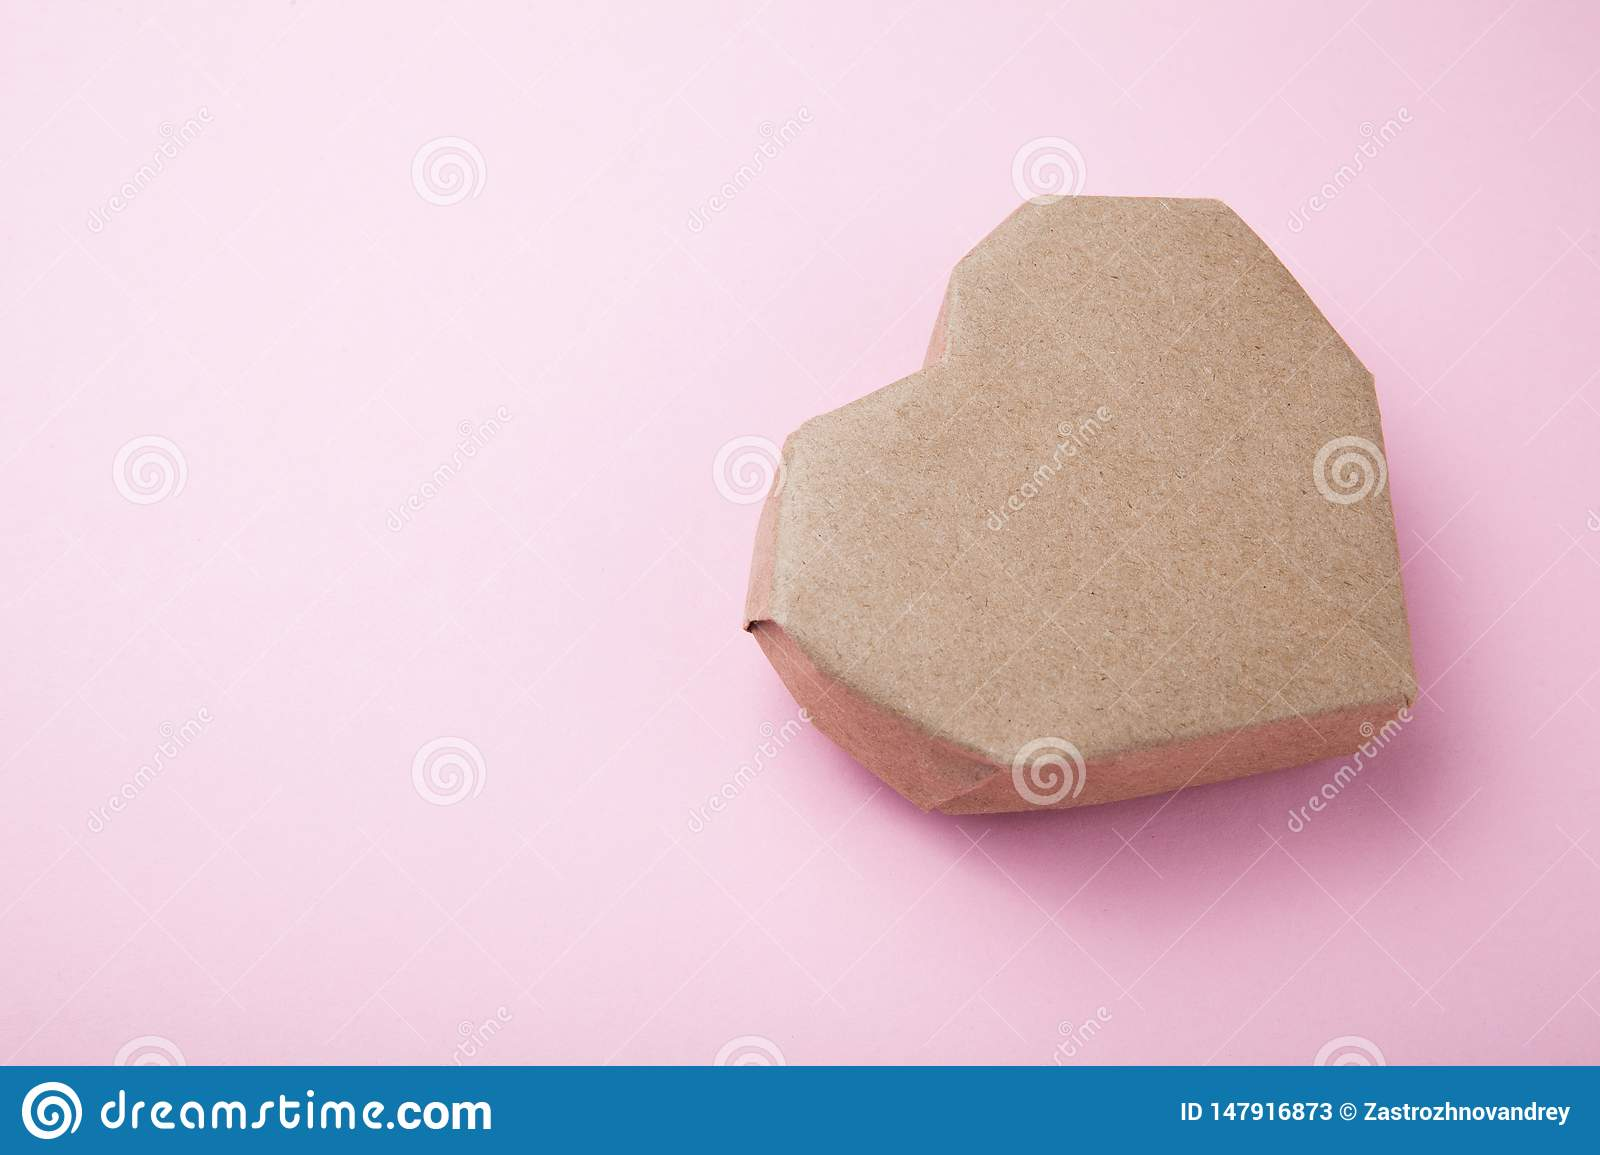 Paper brown heart on a pink background. Copy space for text